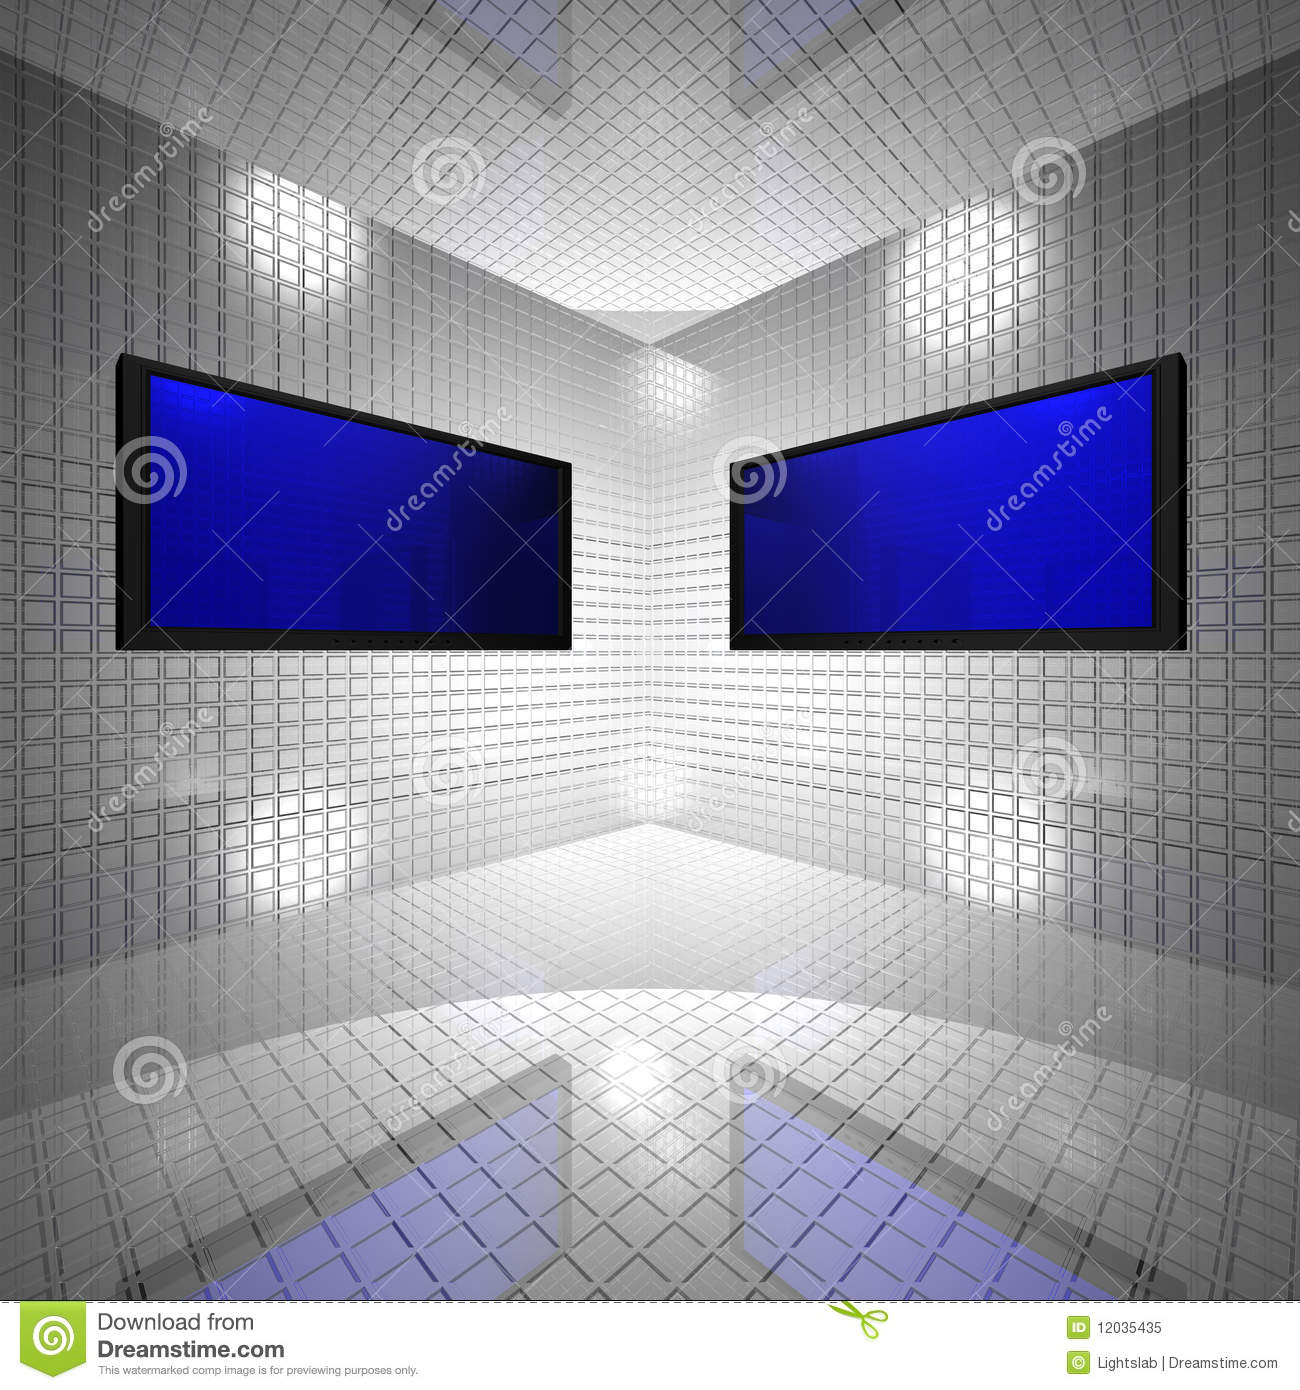 Monitors in grid room royalty free stock photo image for Grid room